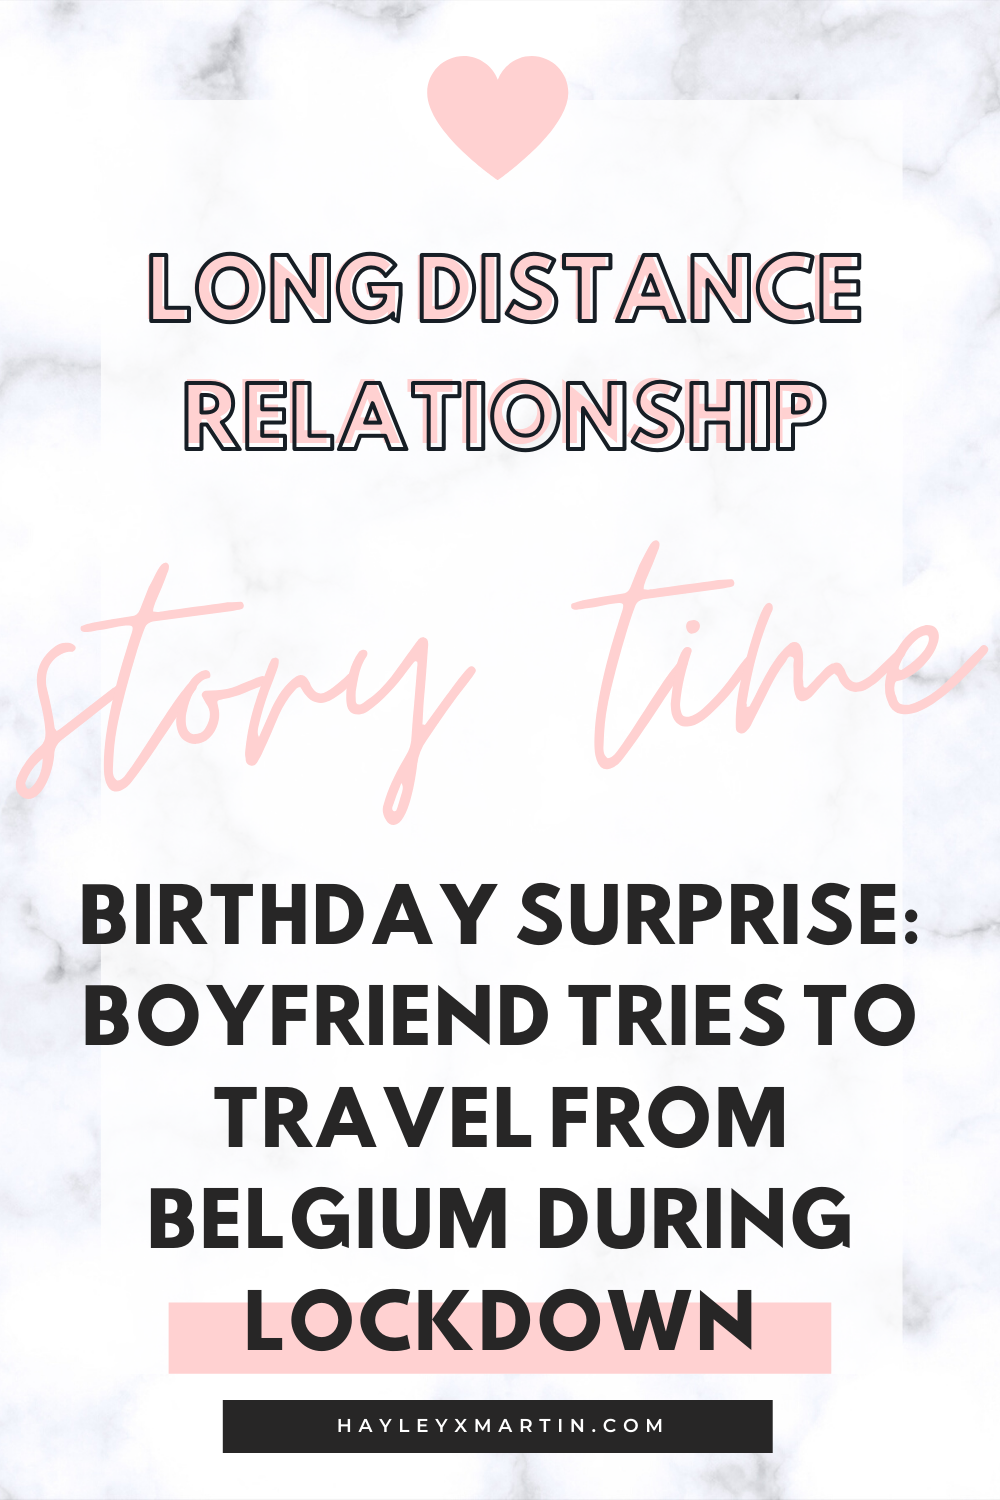 LONG DISTANCE RELATIONSHIP | STORY TIME | BIRTHDAY SURPRISE BOYFRIEND TRIES TO TRAVEL FROM BELGIUM DURING LOCKDOWN